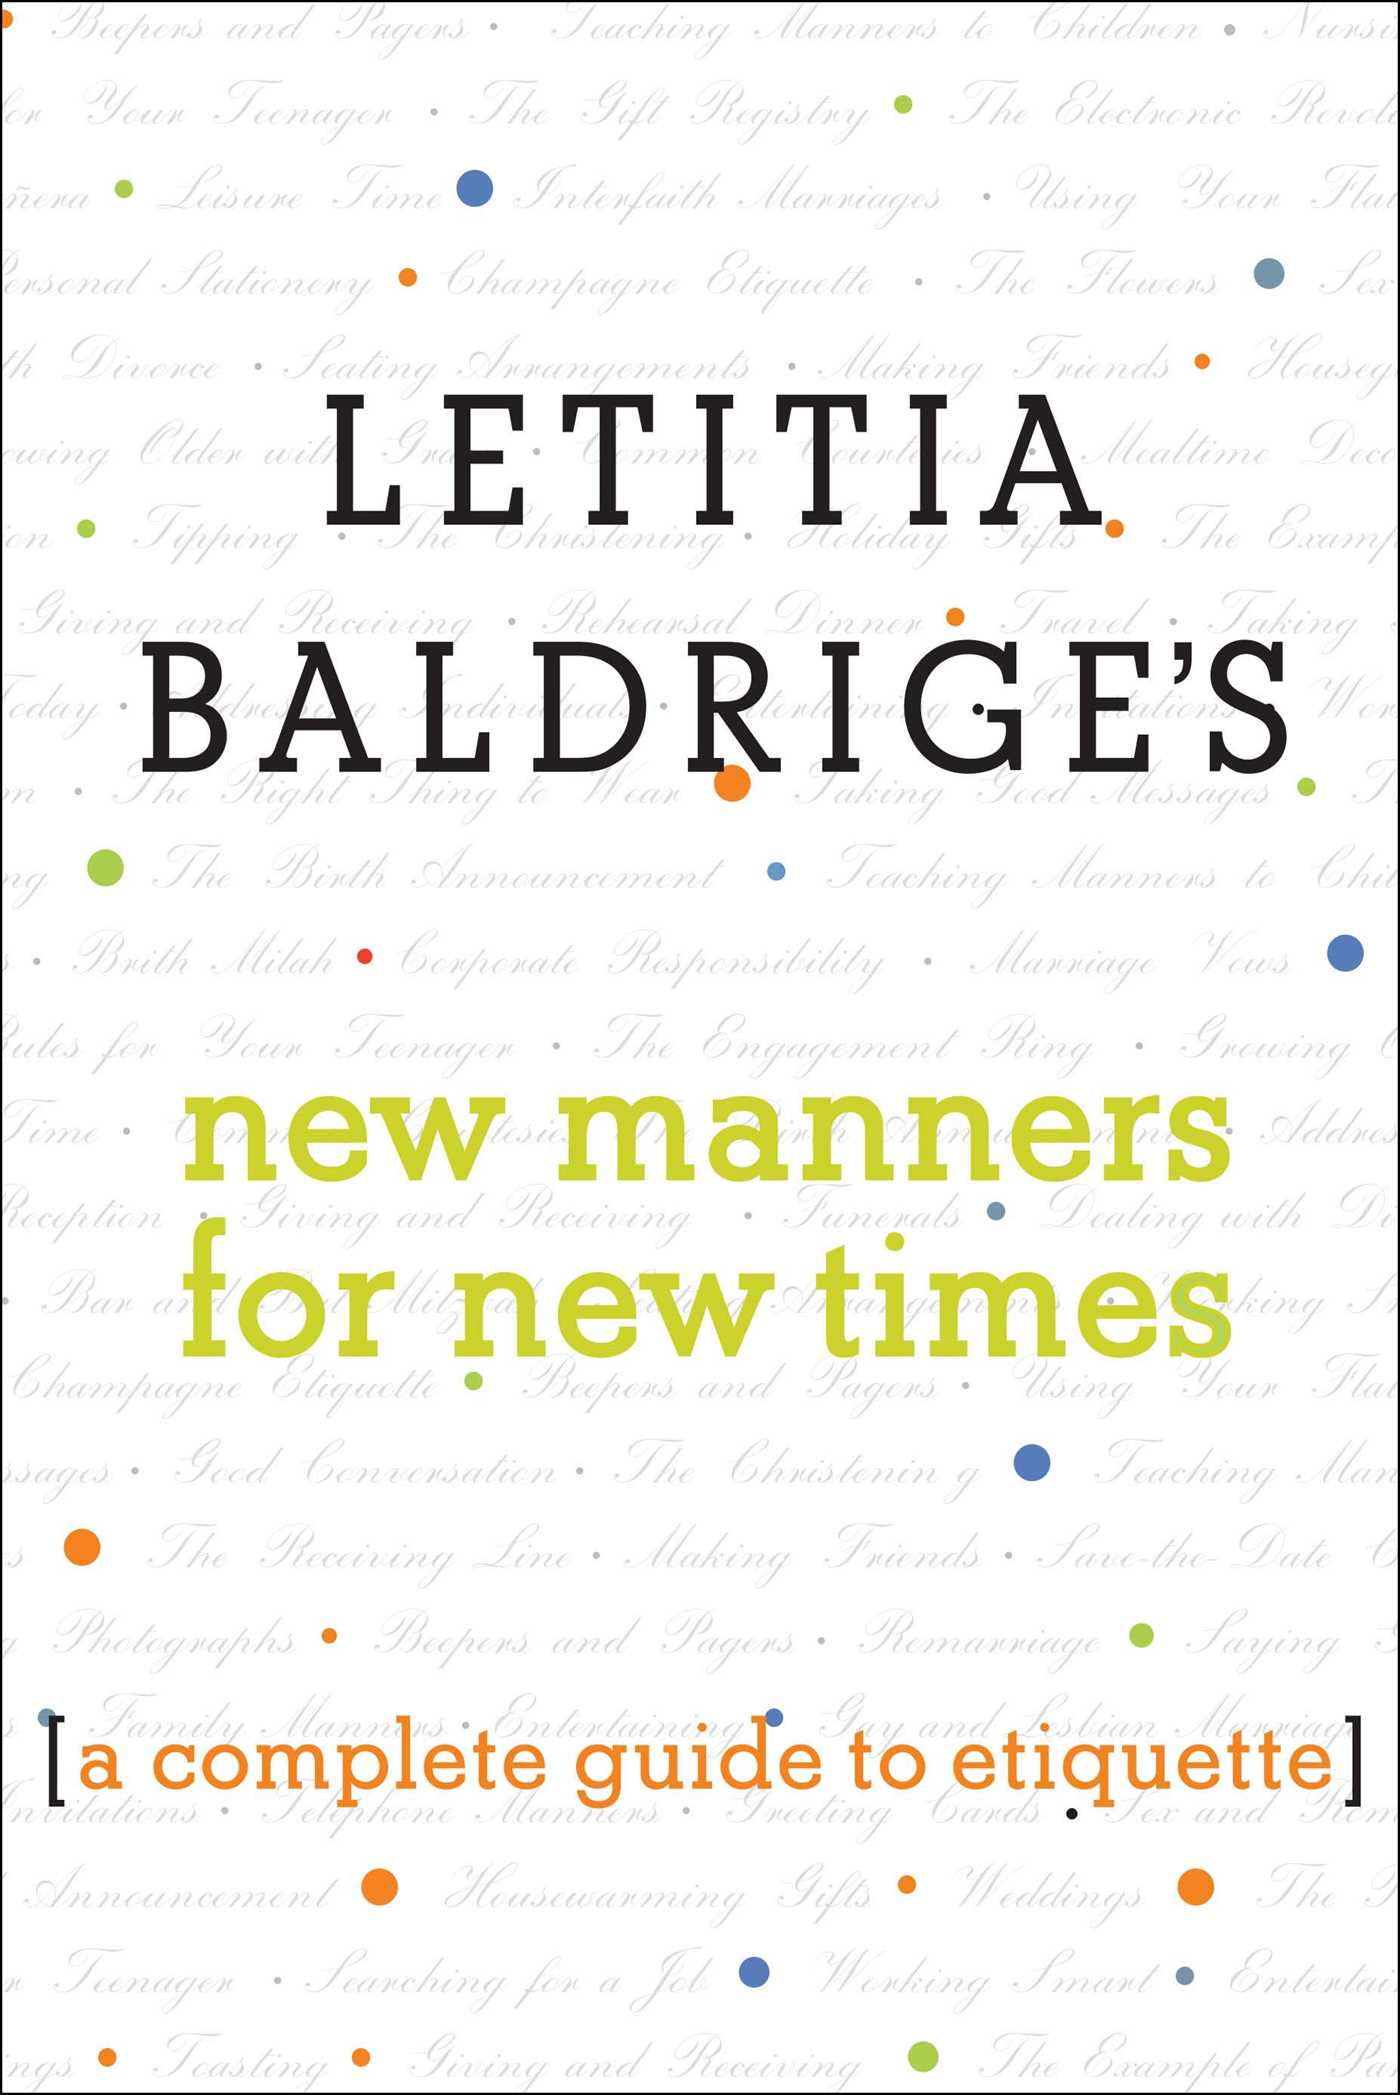 Letitia baldriges new manners for new times 9781439188545 hr